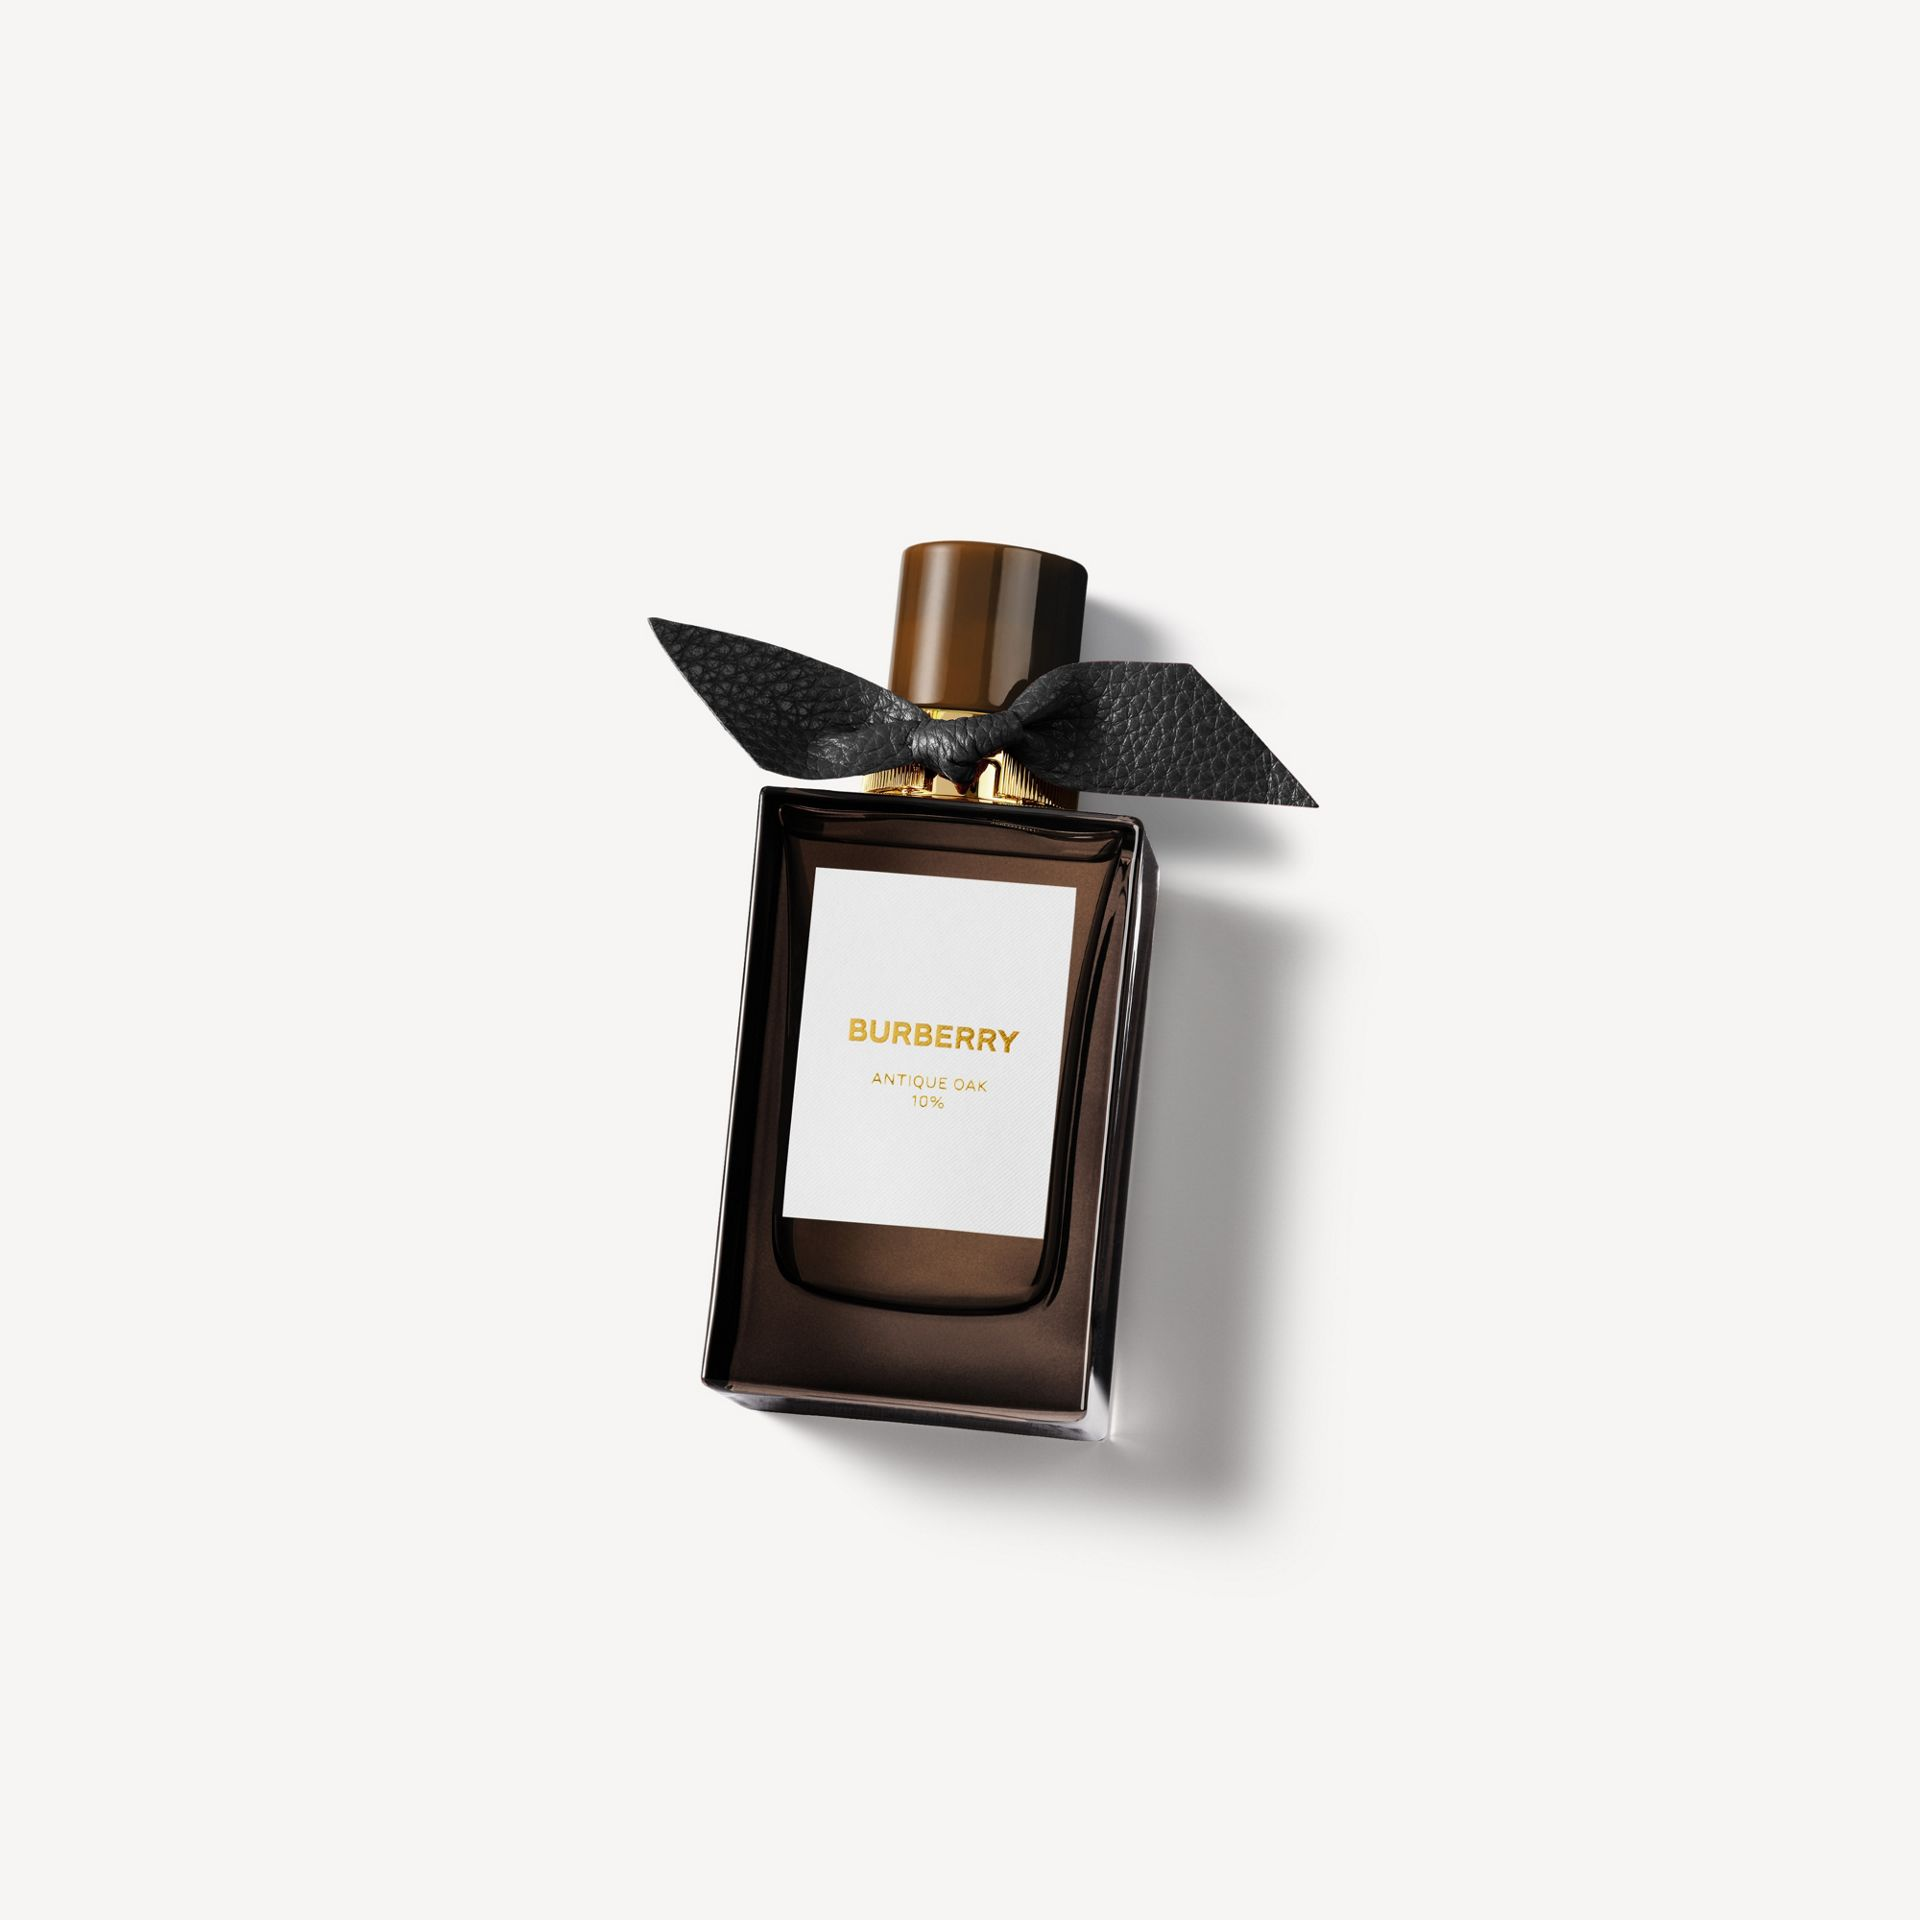 Burberry Signatures Antique Oak Eau de Parfum 100ml (100 Ml) | Burberry - galeria de imagens 0